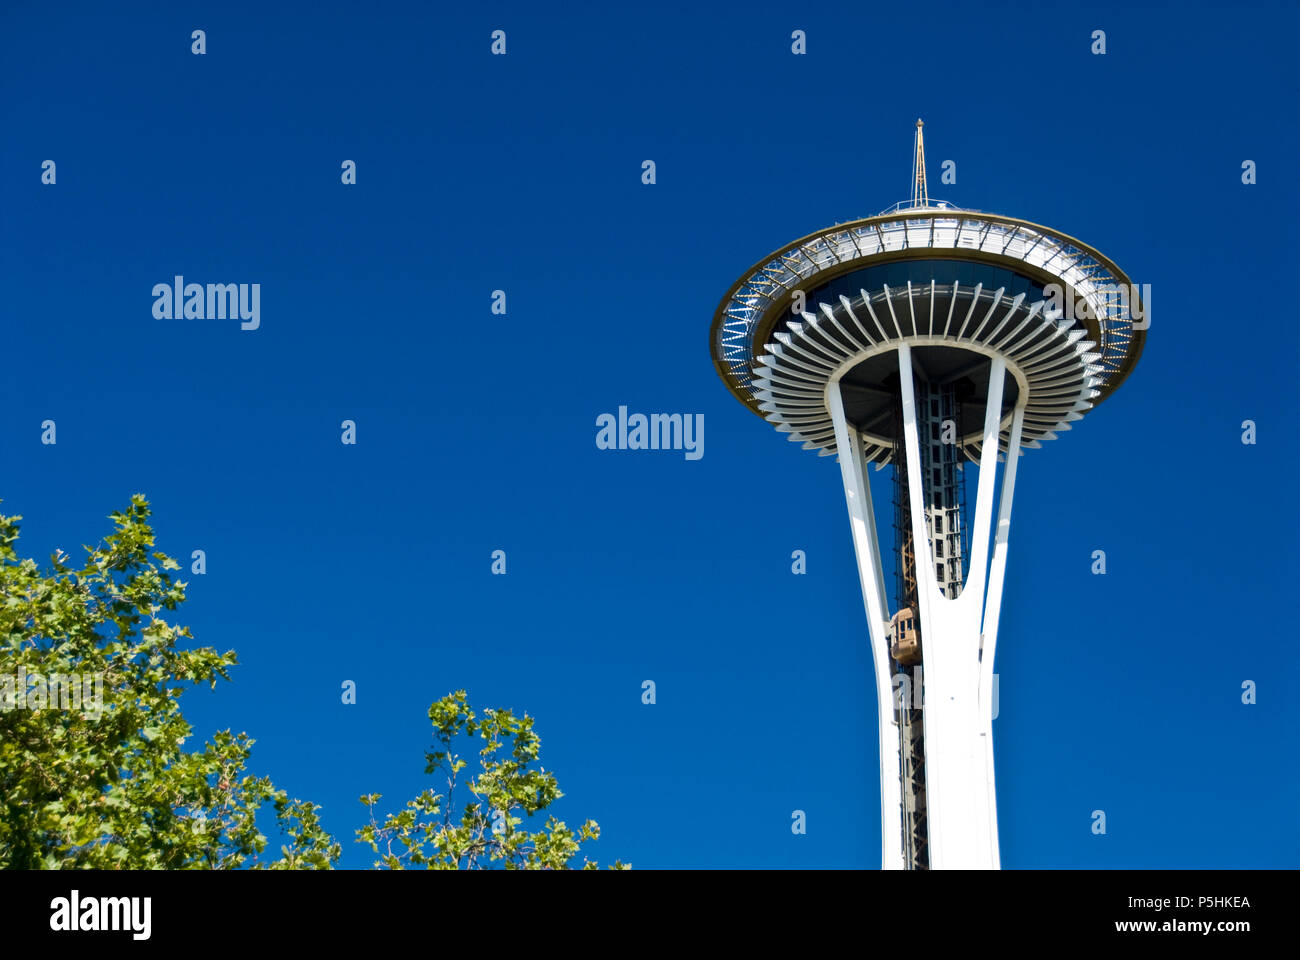 The Space Needle, located at the Seattle Center, was built for the 1962 World's Fair and has become the symbol of Seattle. - Stock Image